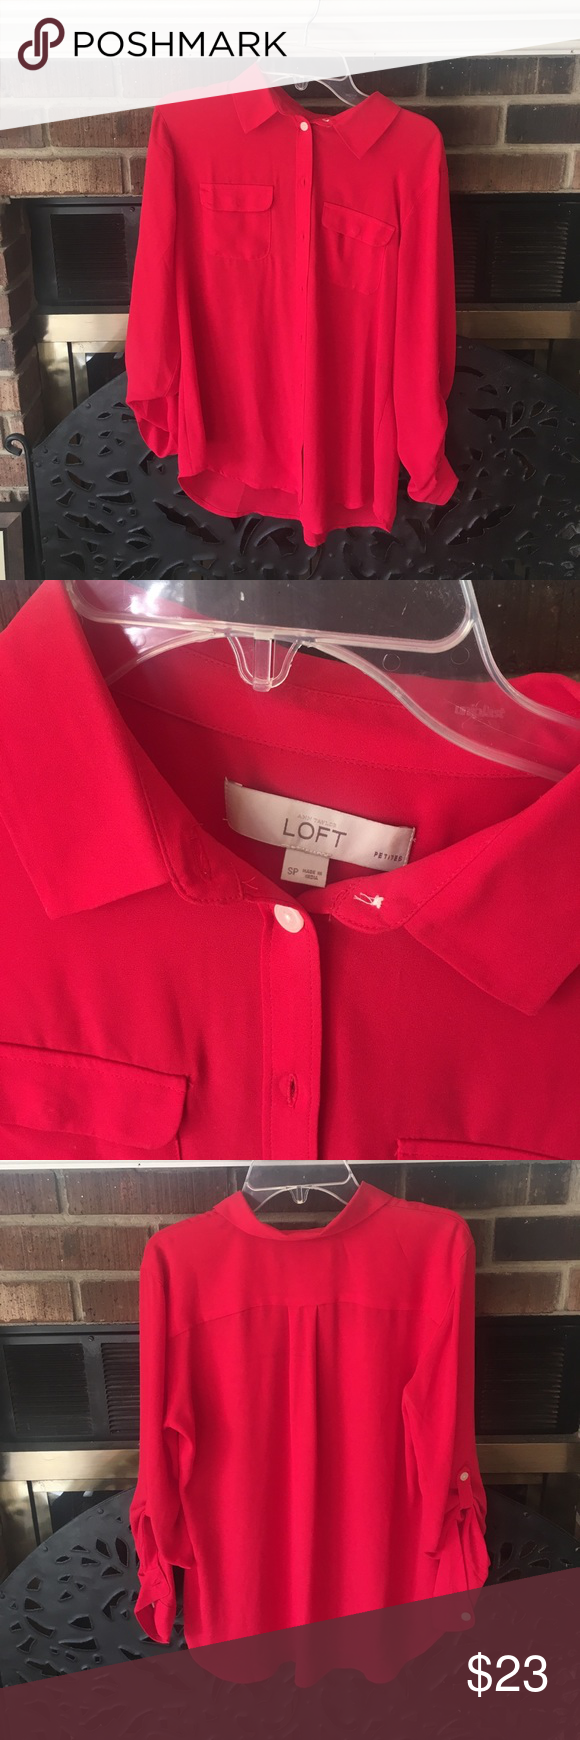 Loft red blouse Ruby red button down blouse from the Loft. White buttons and very flows fabric, perfect to dress up or down! Lightly worn. Fits a small. LOFT Tops Blouses